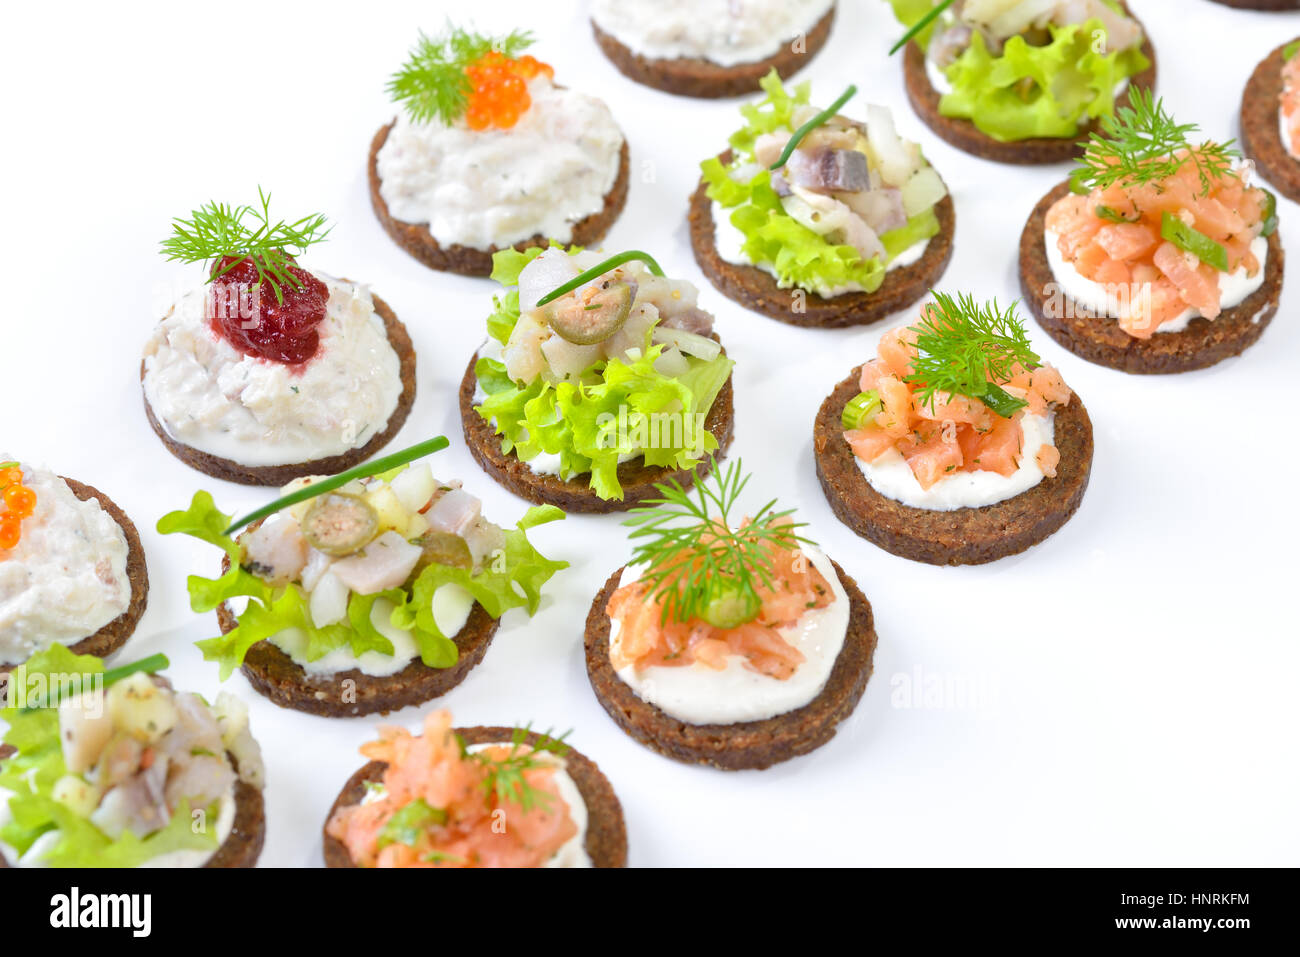 Tasty fish finger food  with smoked salmon tartar, trout mousse with caviar and herring salad on round pumpernickel - Stock Image